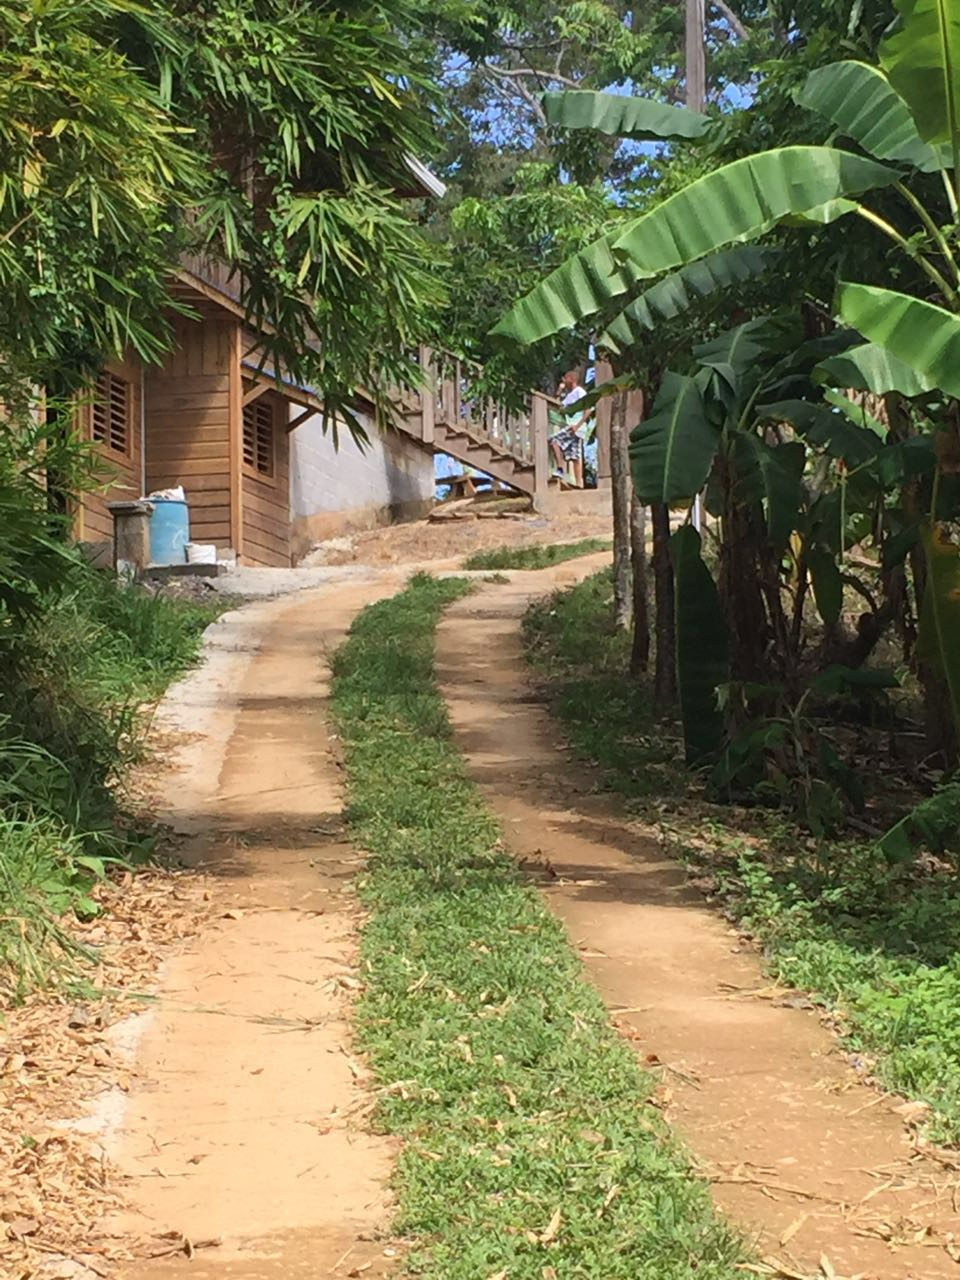 The steep road up to the school where the back packs were distributed